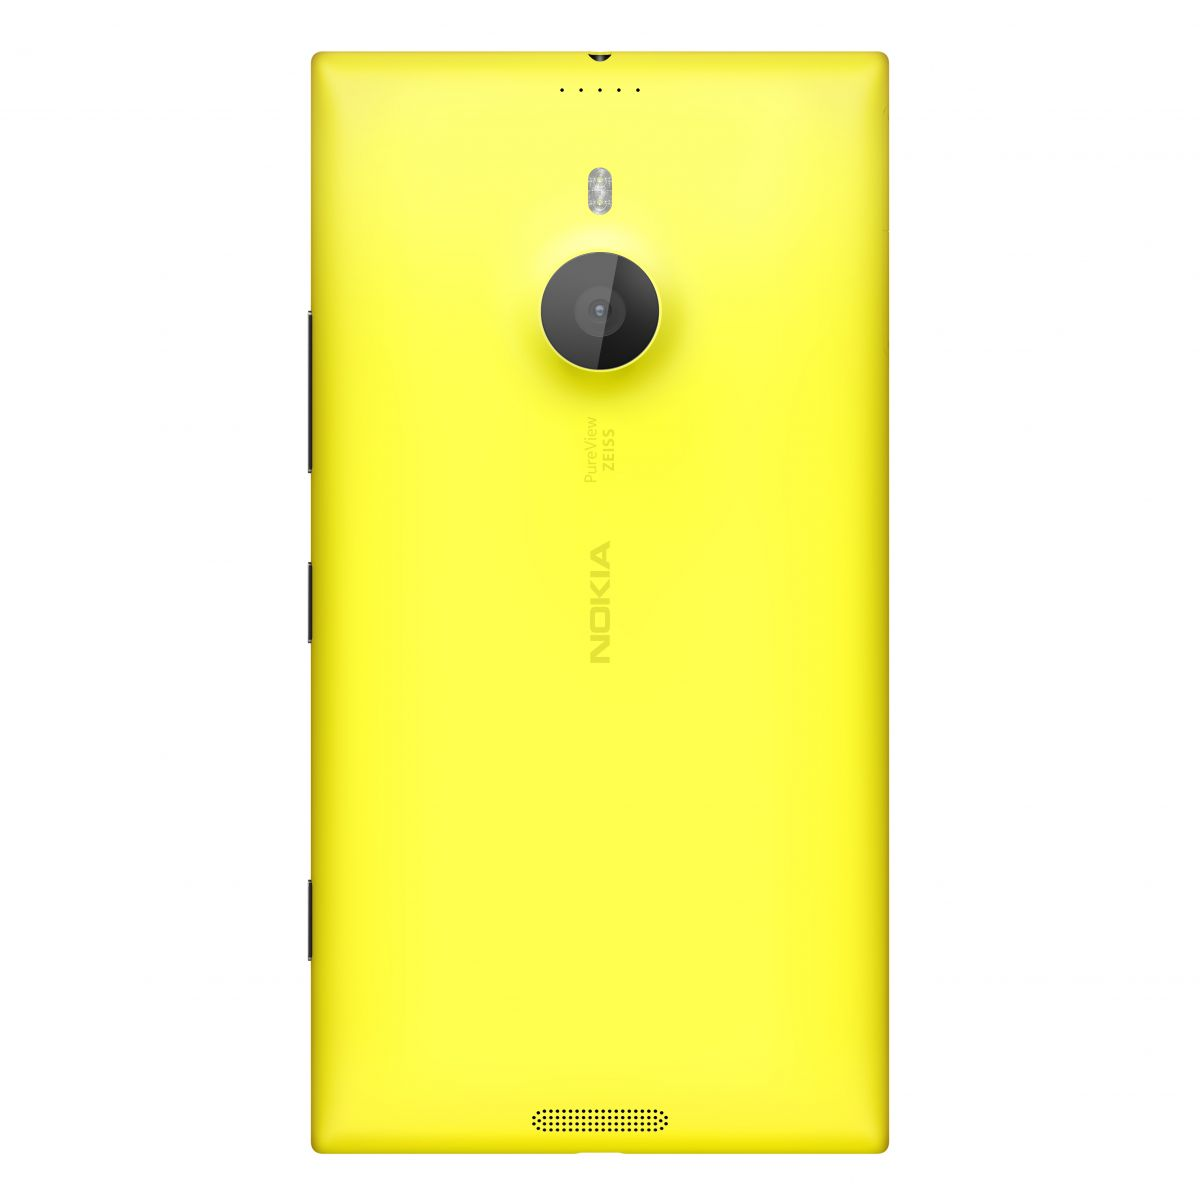 1200-nokia-lumia-1520-yellow-back.jpg